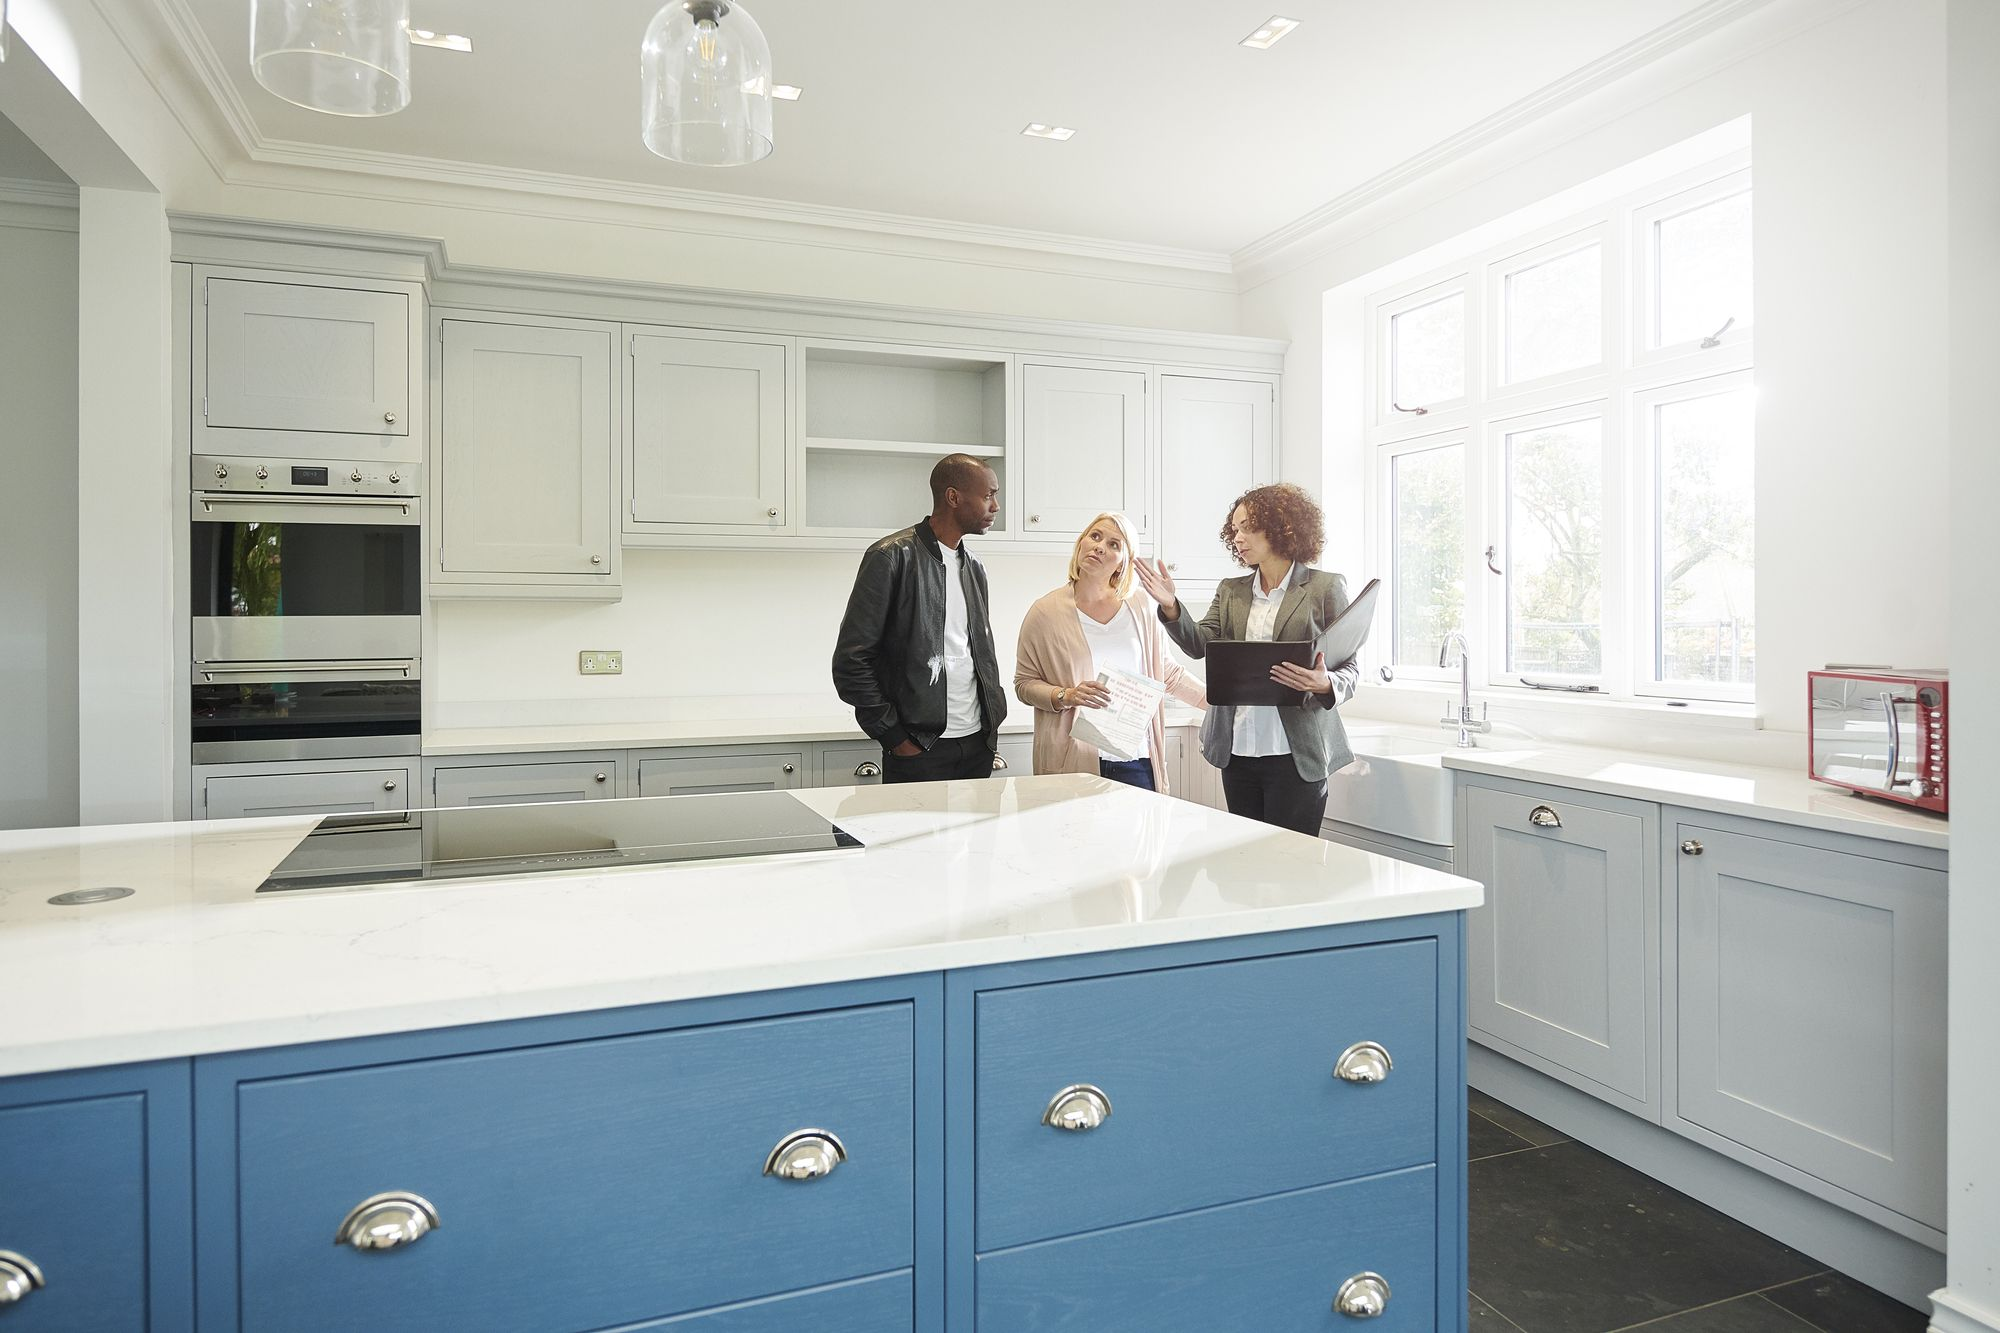 4 Reasons Why Property Management Businesses Are Thriving